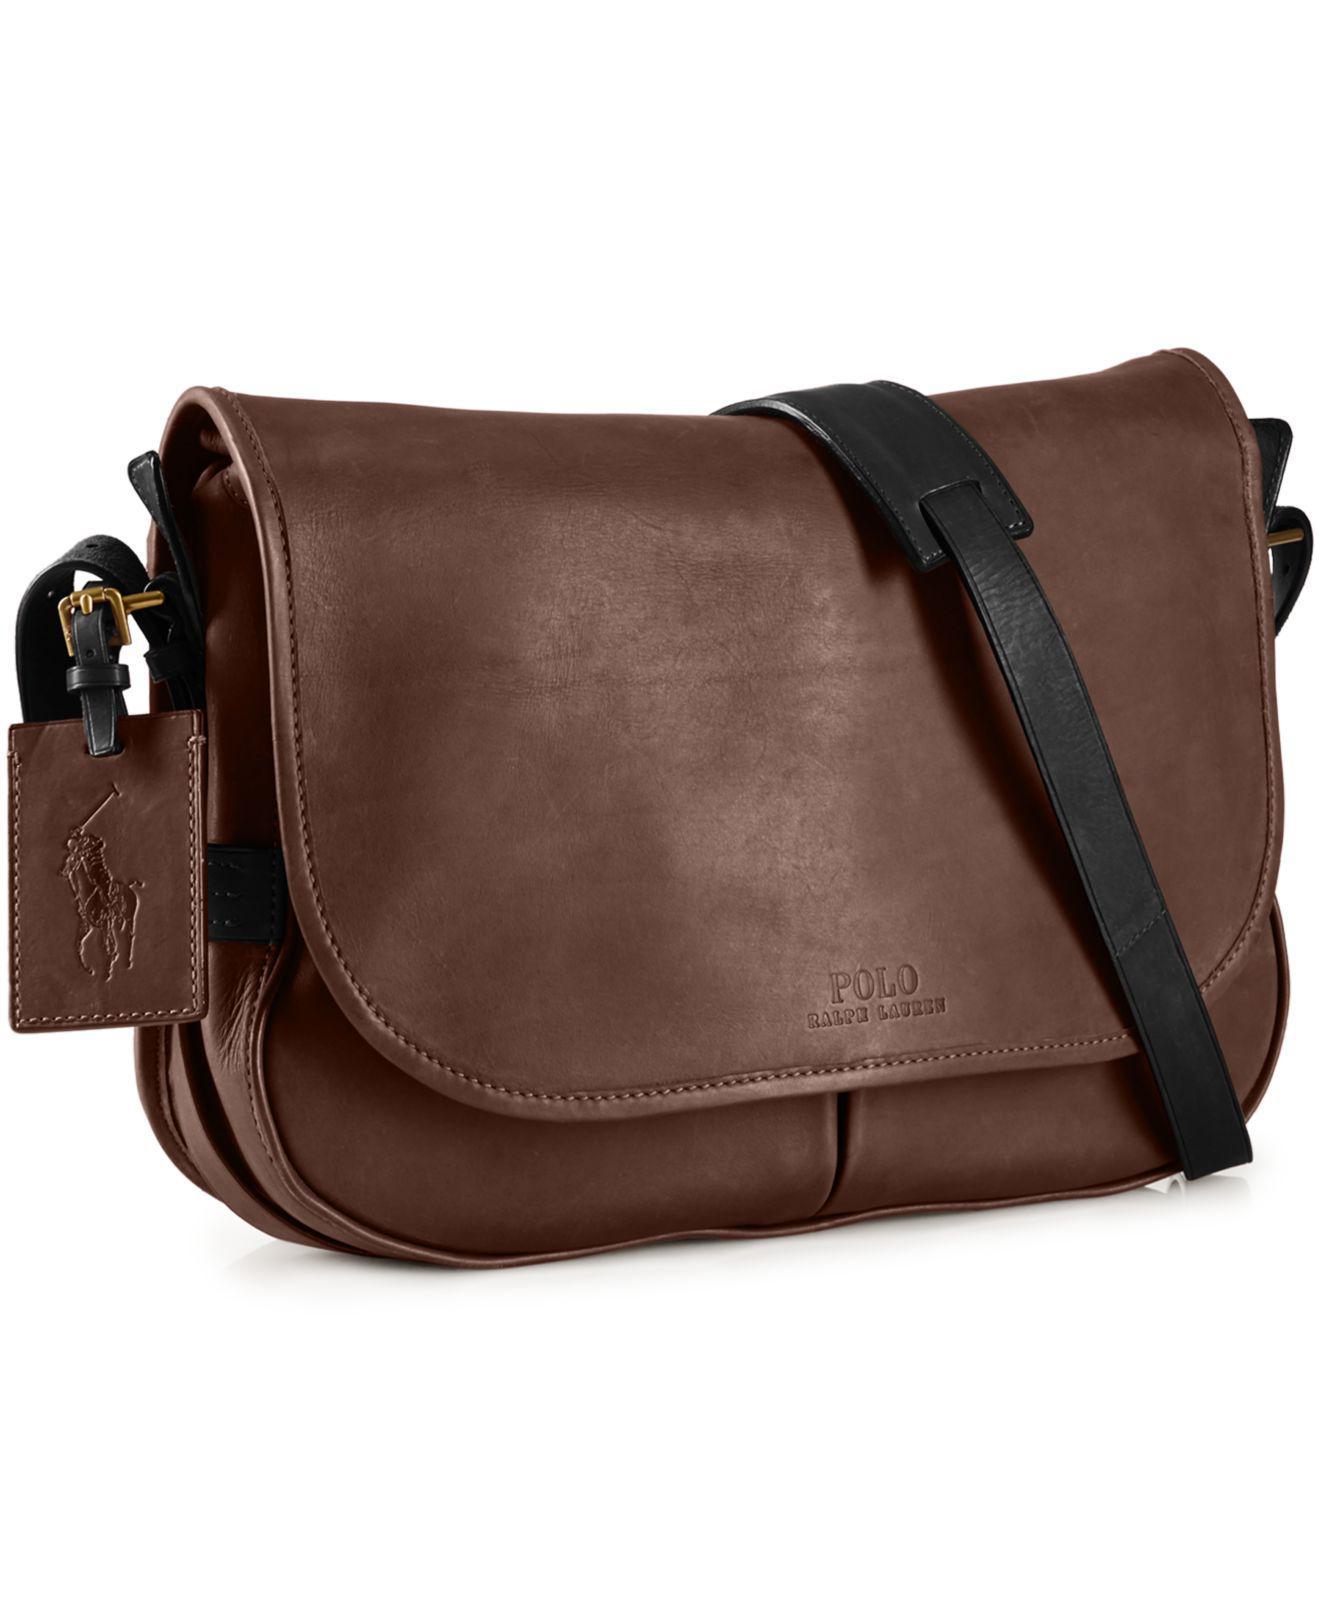 Lyst - Polo Ralph Lauren Two-toned Leather Messenger Bag in Brown ... 97d017fb45599